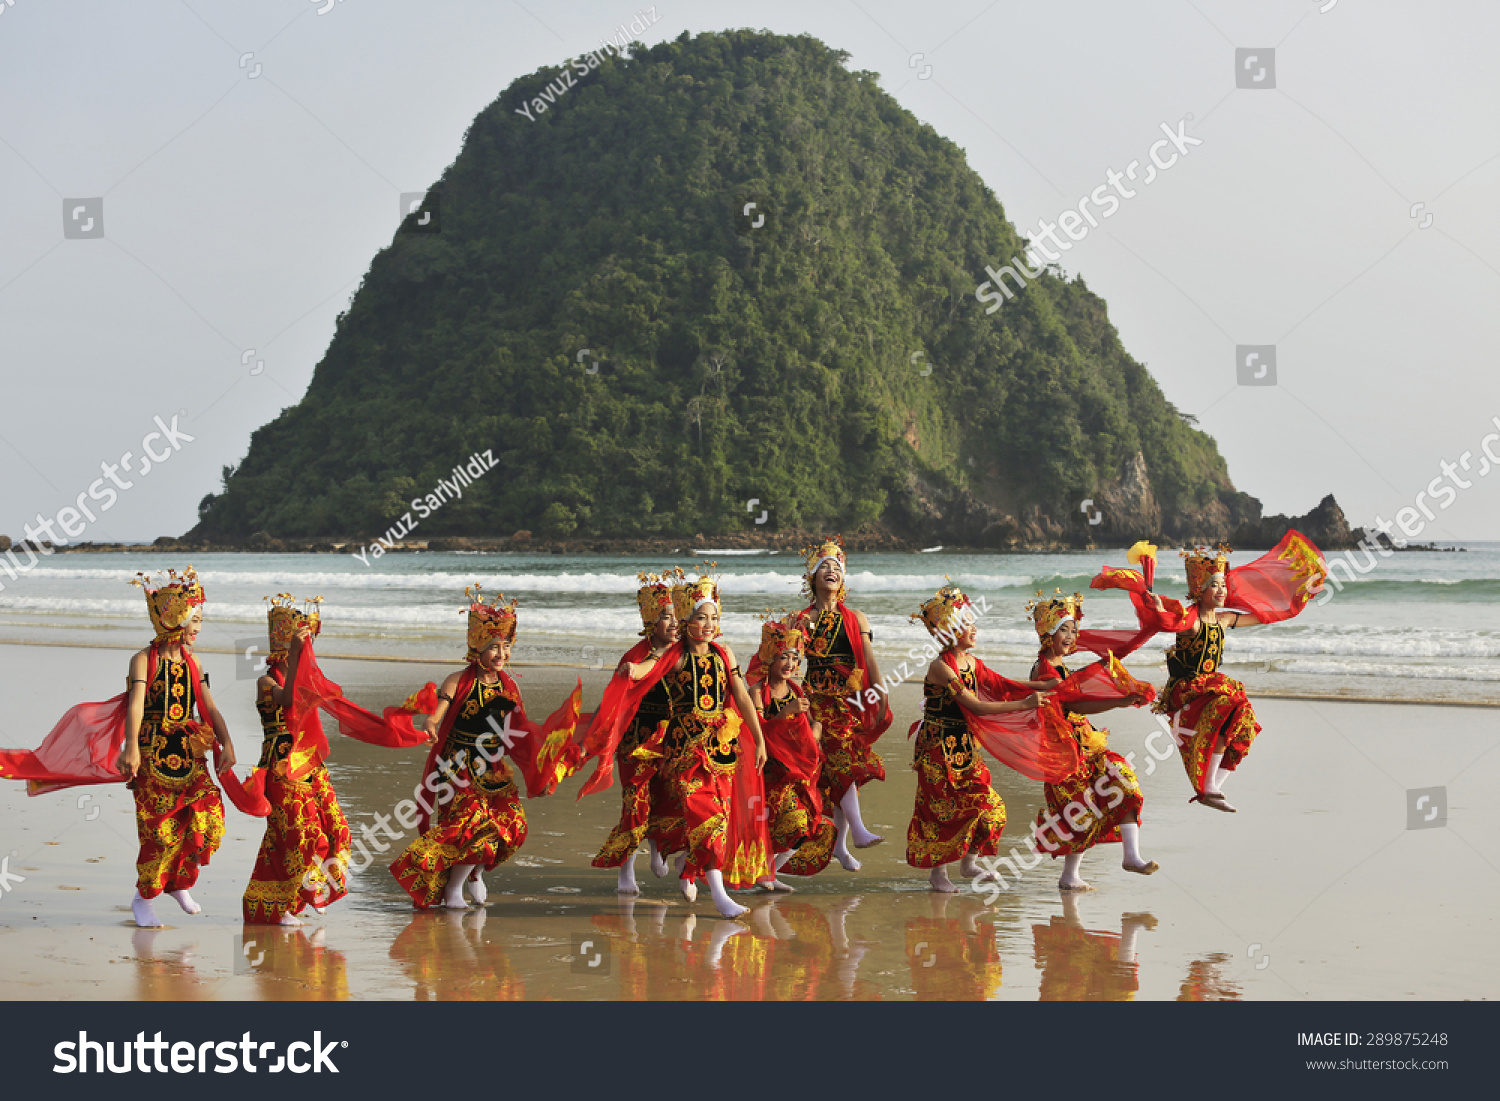 MERAH BEACH BANYUWANGI INDONESIA May 24 2015 Unidentified Indonesia folk dancers perform their traditional folk dance in the coastline of Merah Beach Banyuwangi Indonesia